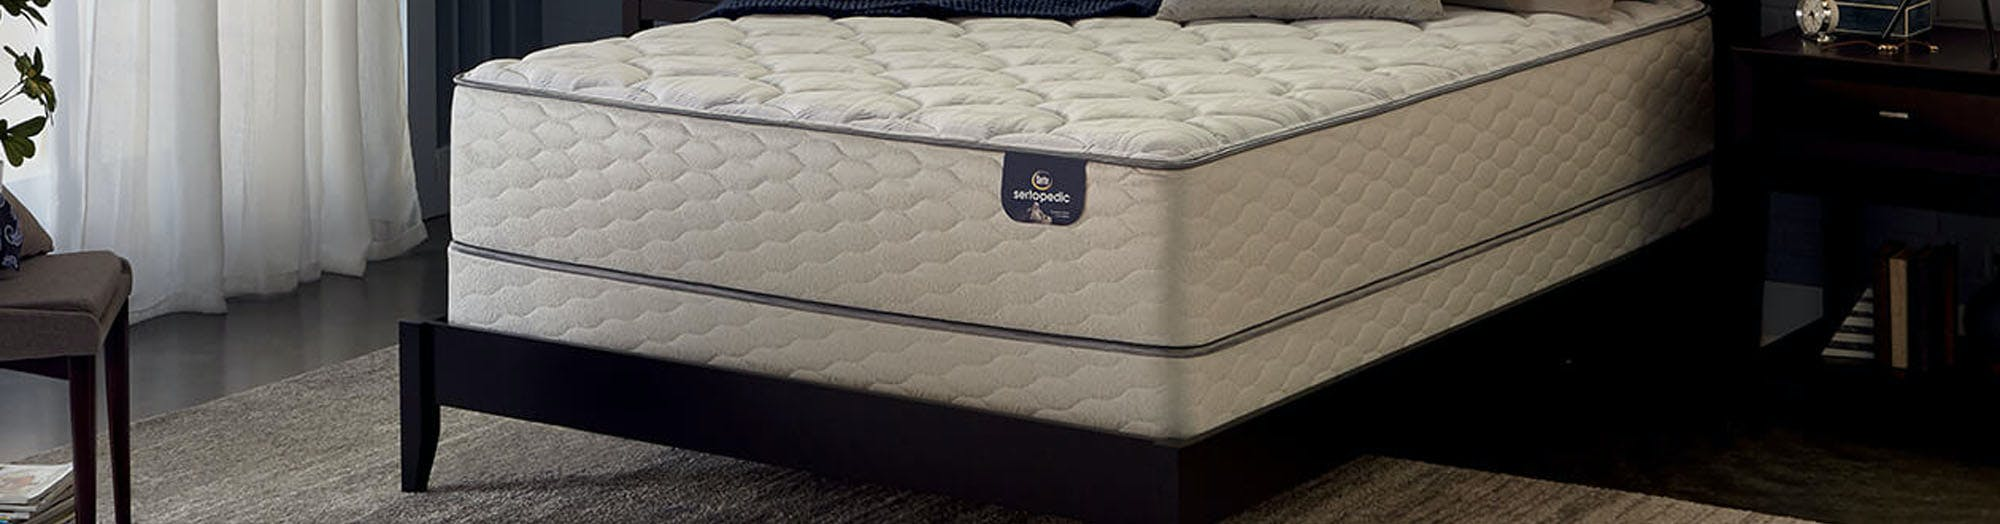 For Serta Mattresses In Cincinnati And Dayton Oh